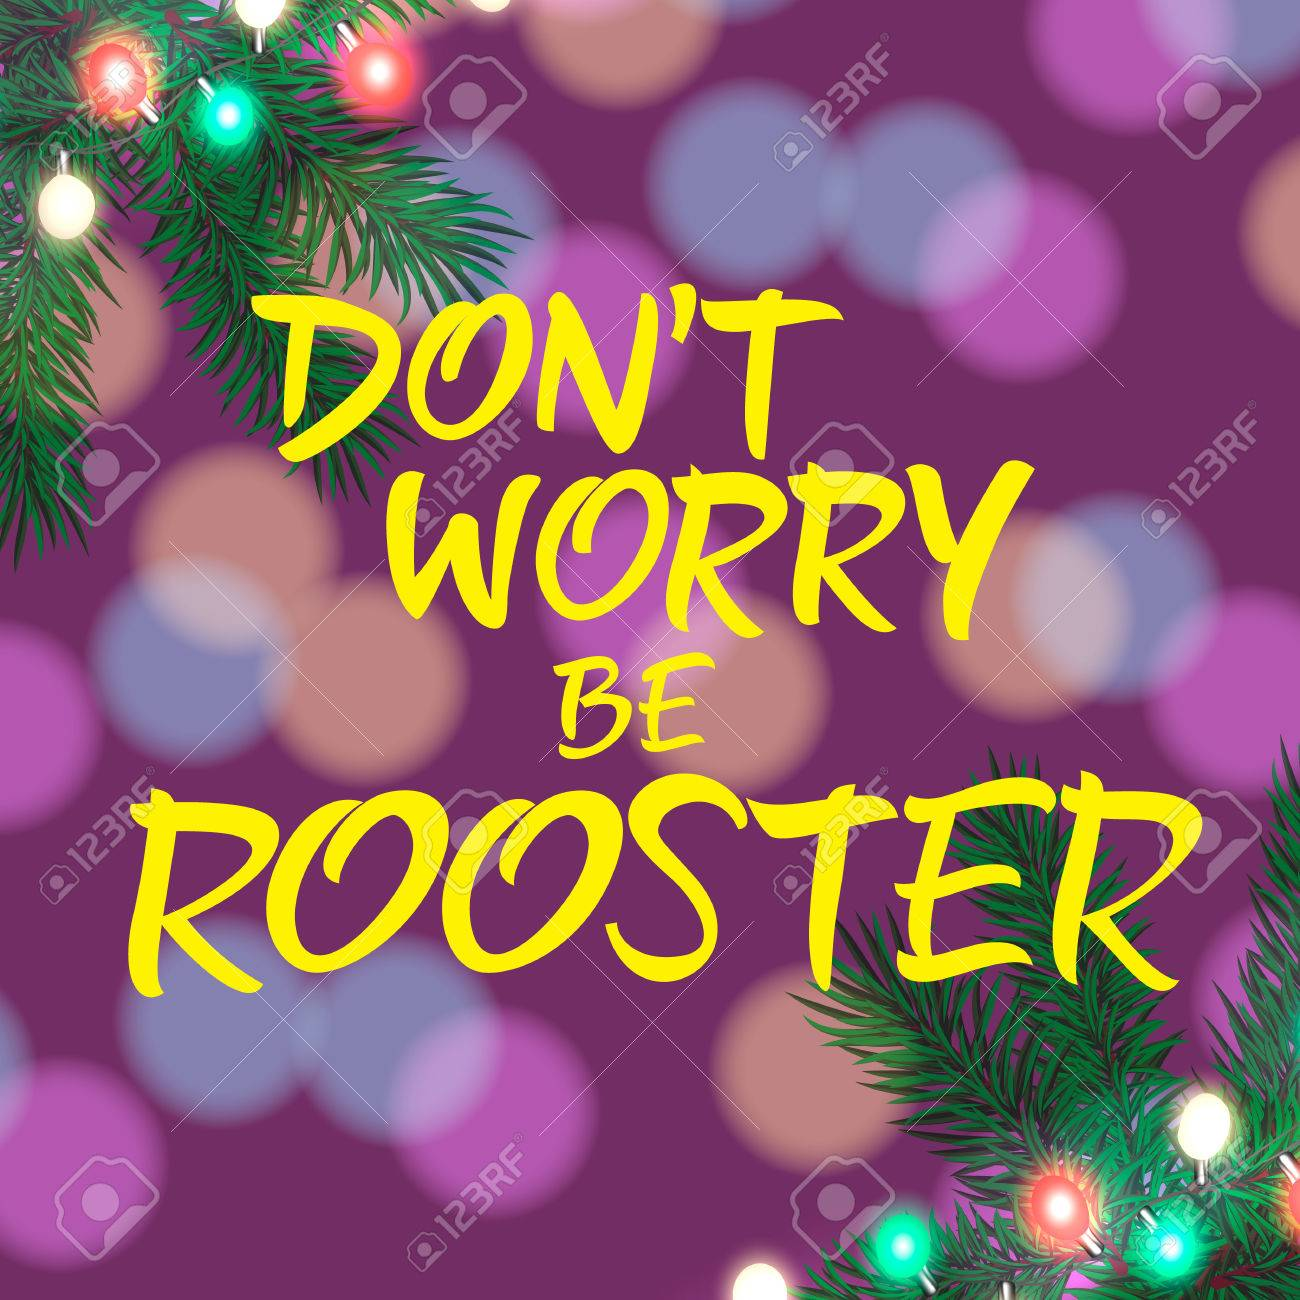 Dont Worry Be Rooster Lettering Christmas Greeting Card With